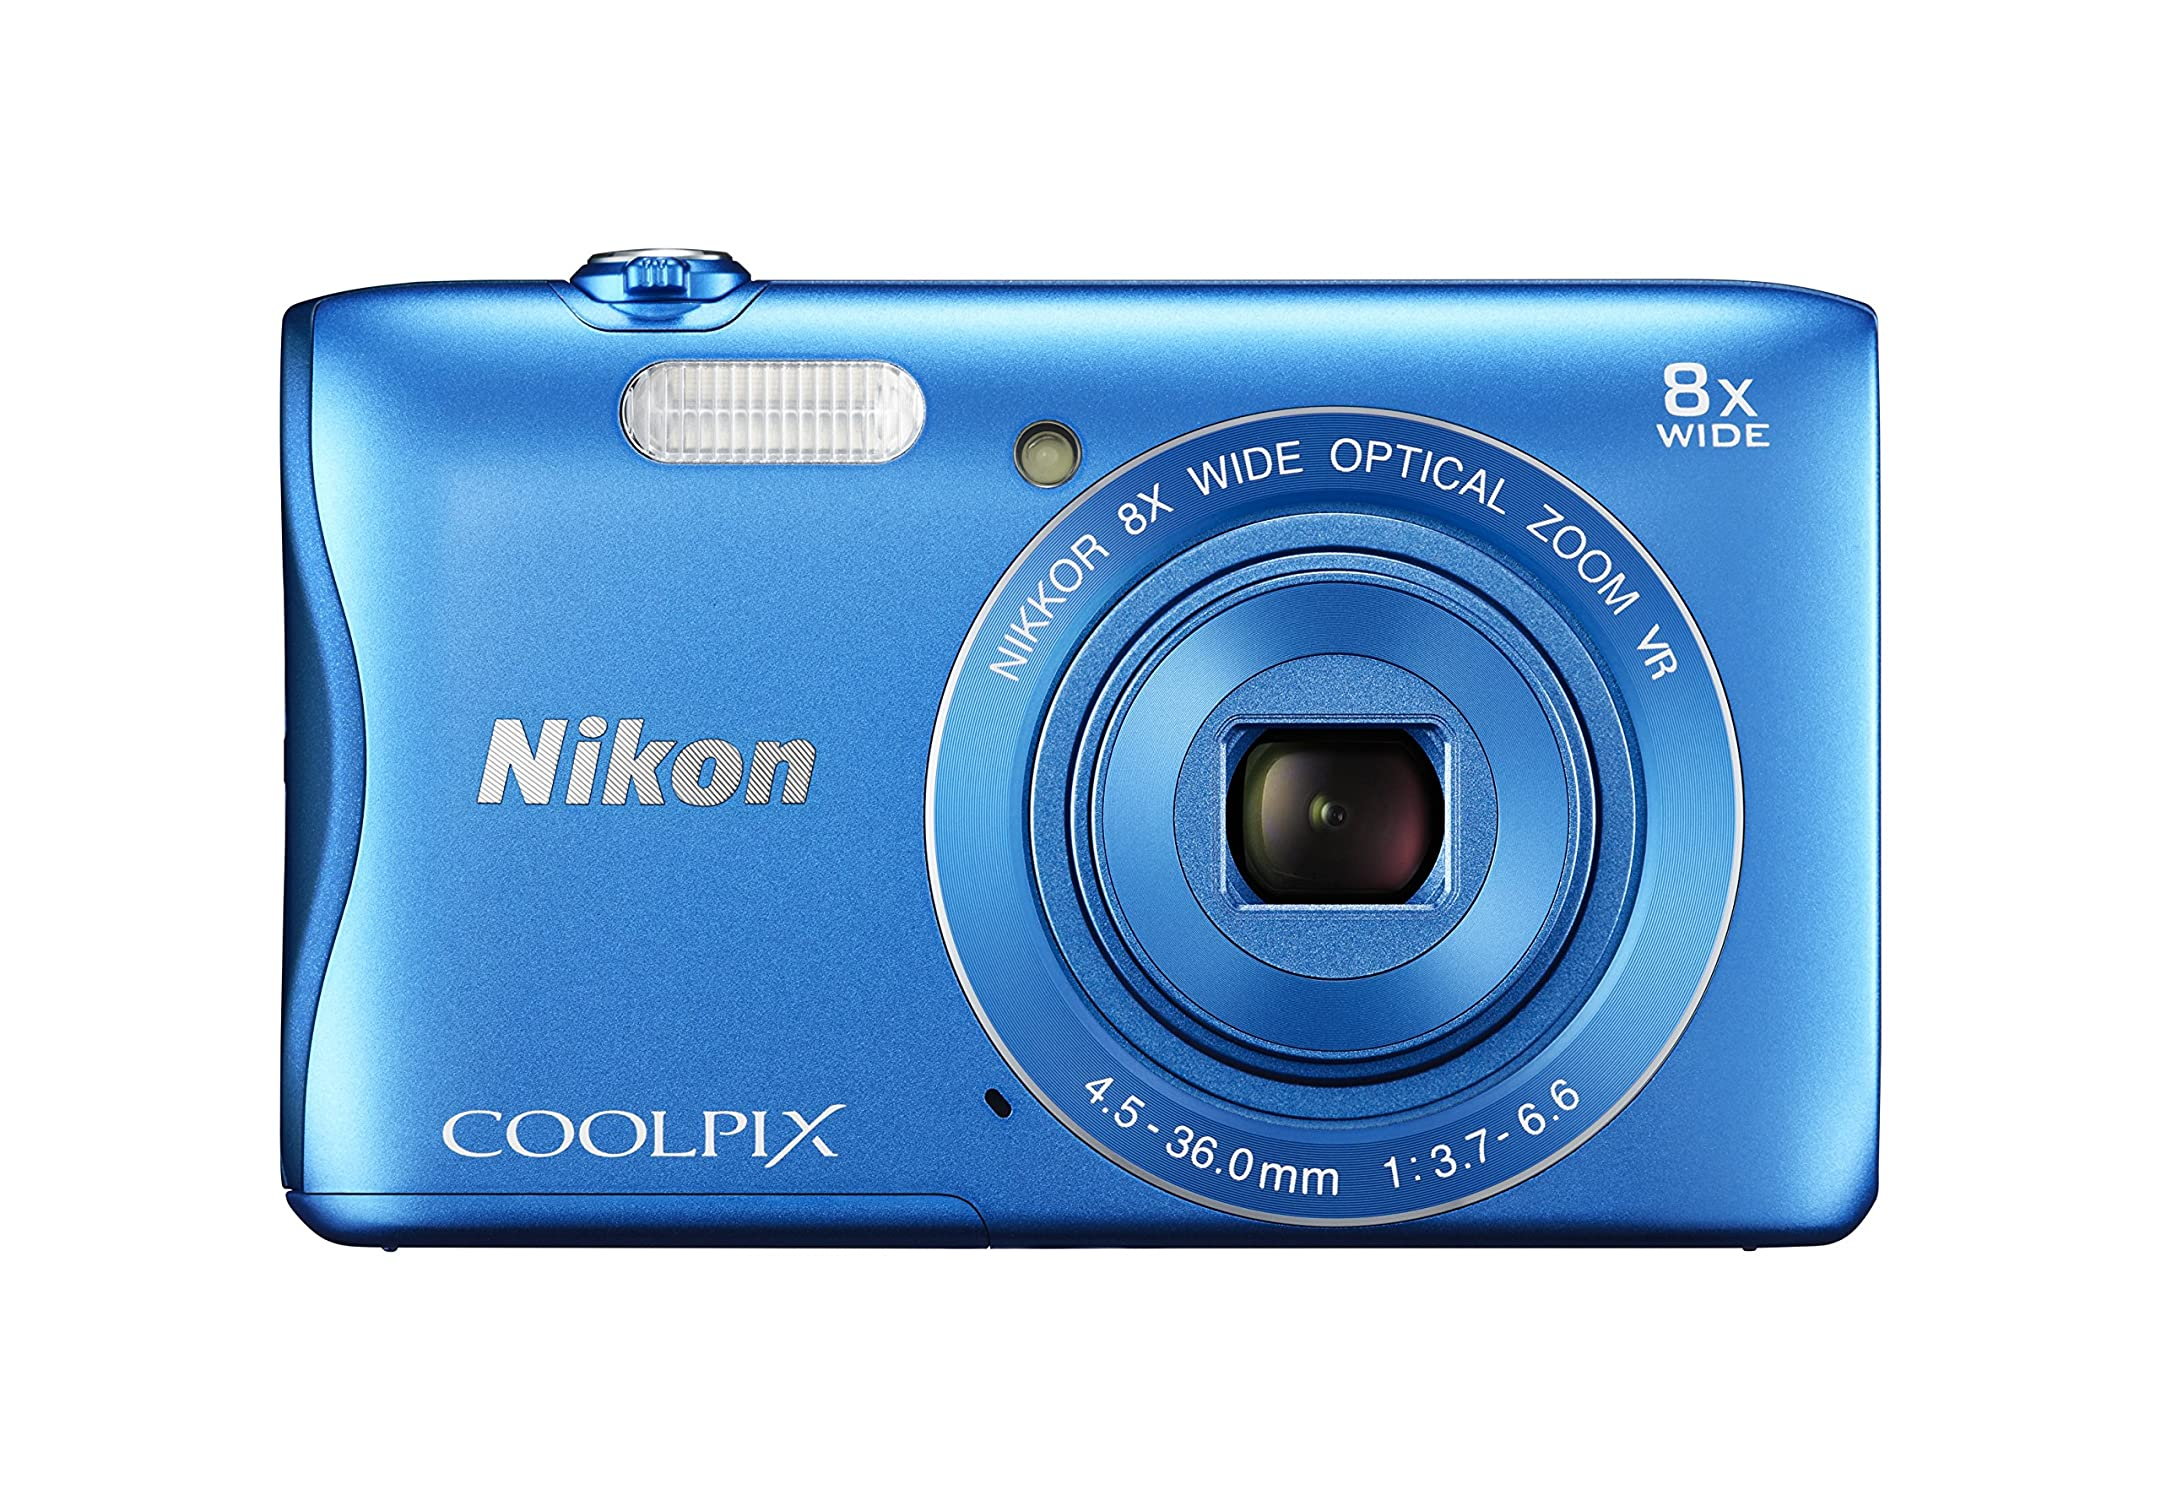 Nikon Coolpix S3700 20.1mp Ccd, 8x Zoom Blue Photo - nikon - ebay.com